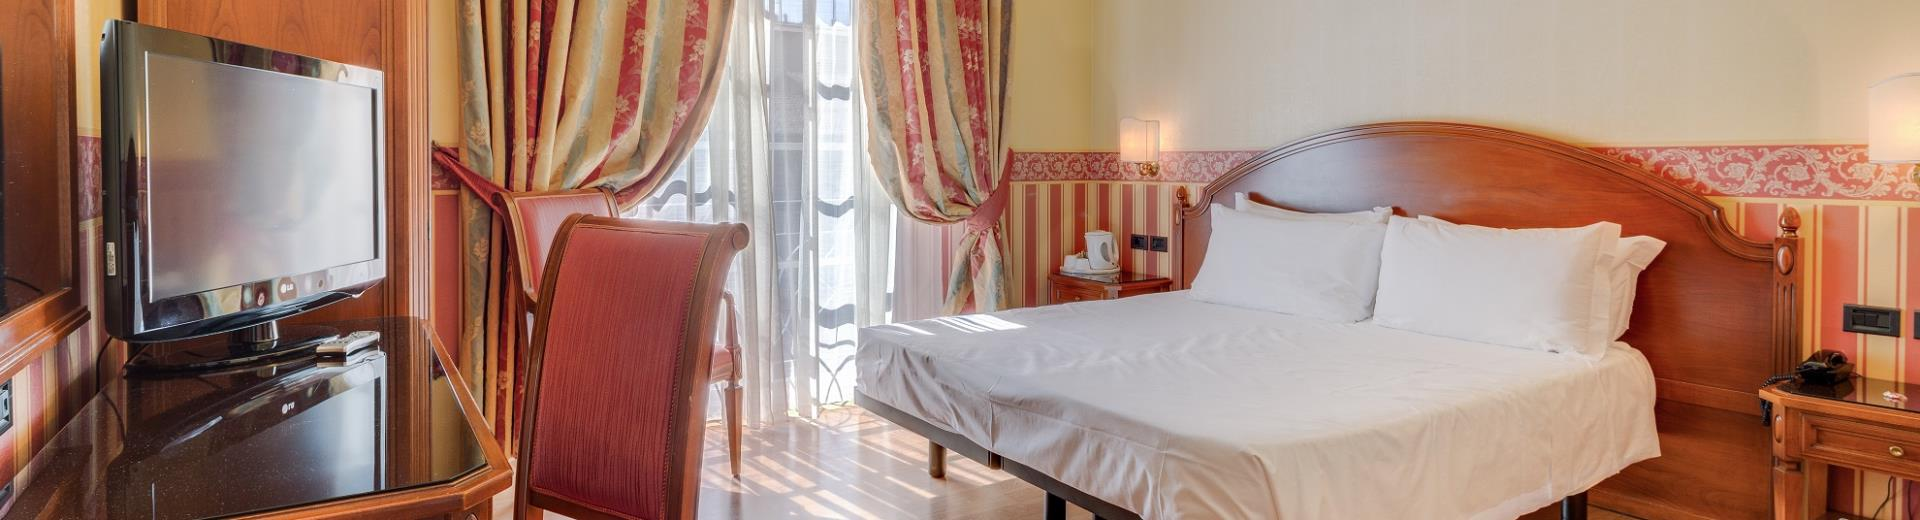 Deluxe rooms in the Centre of Bologna at the BW Hotel San Donato